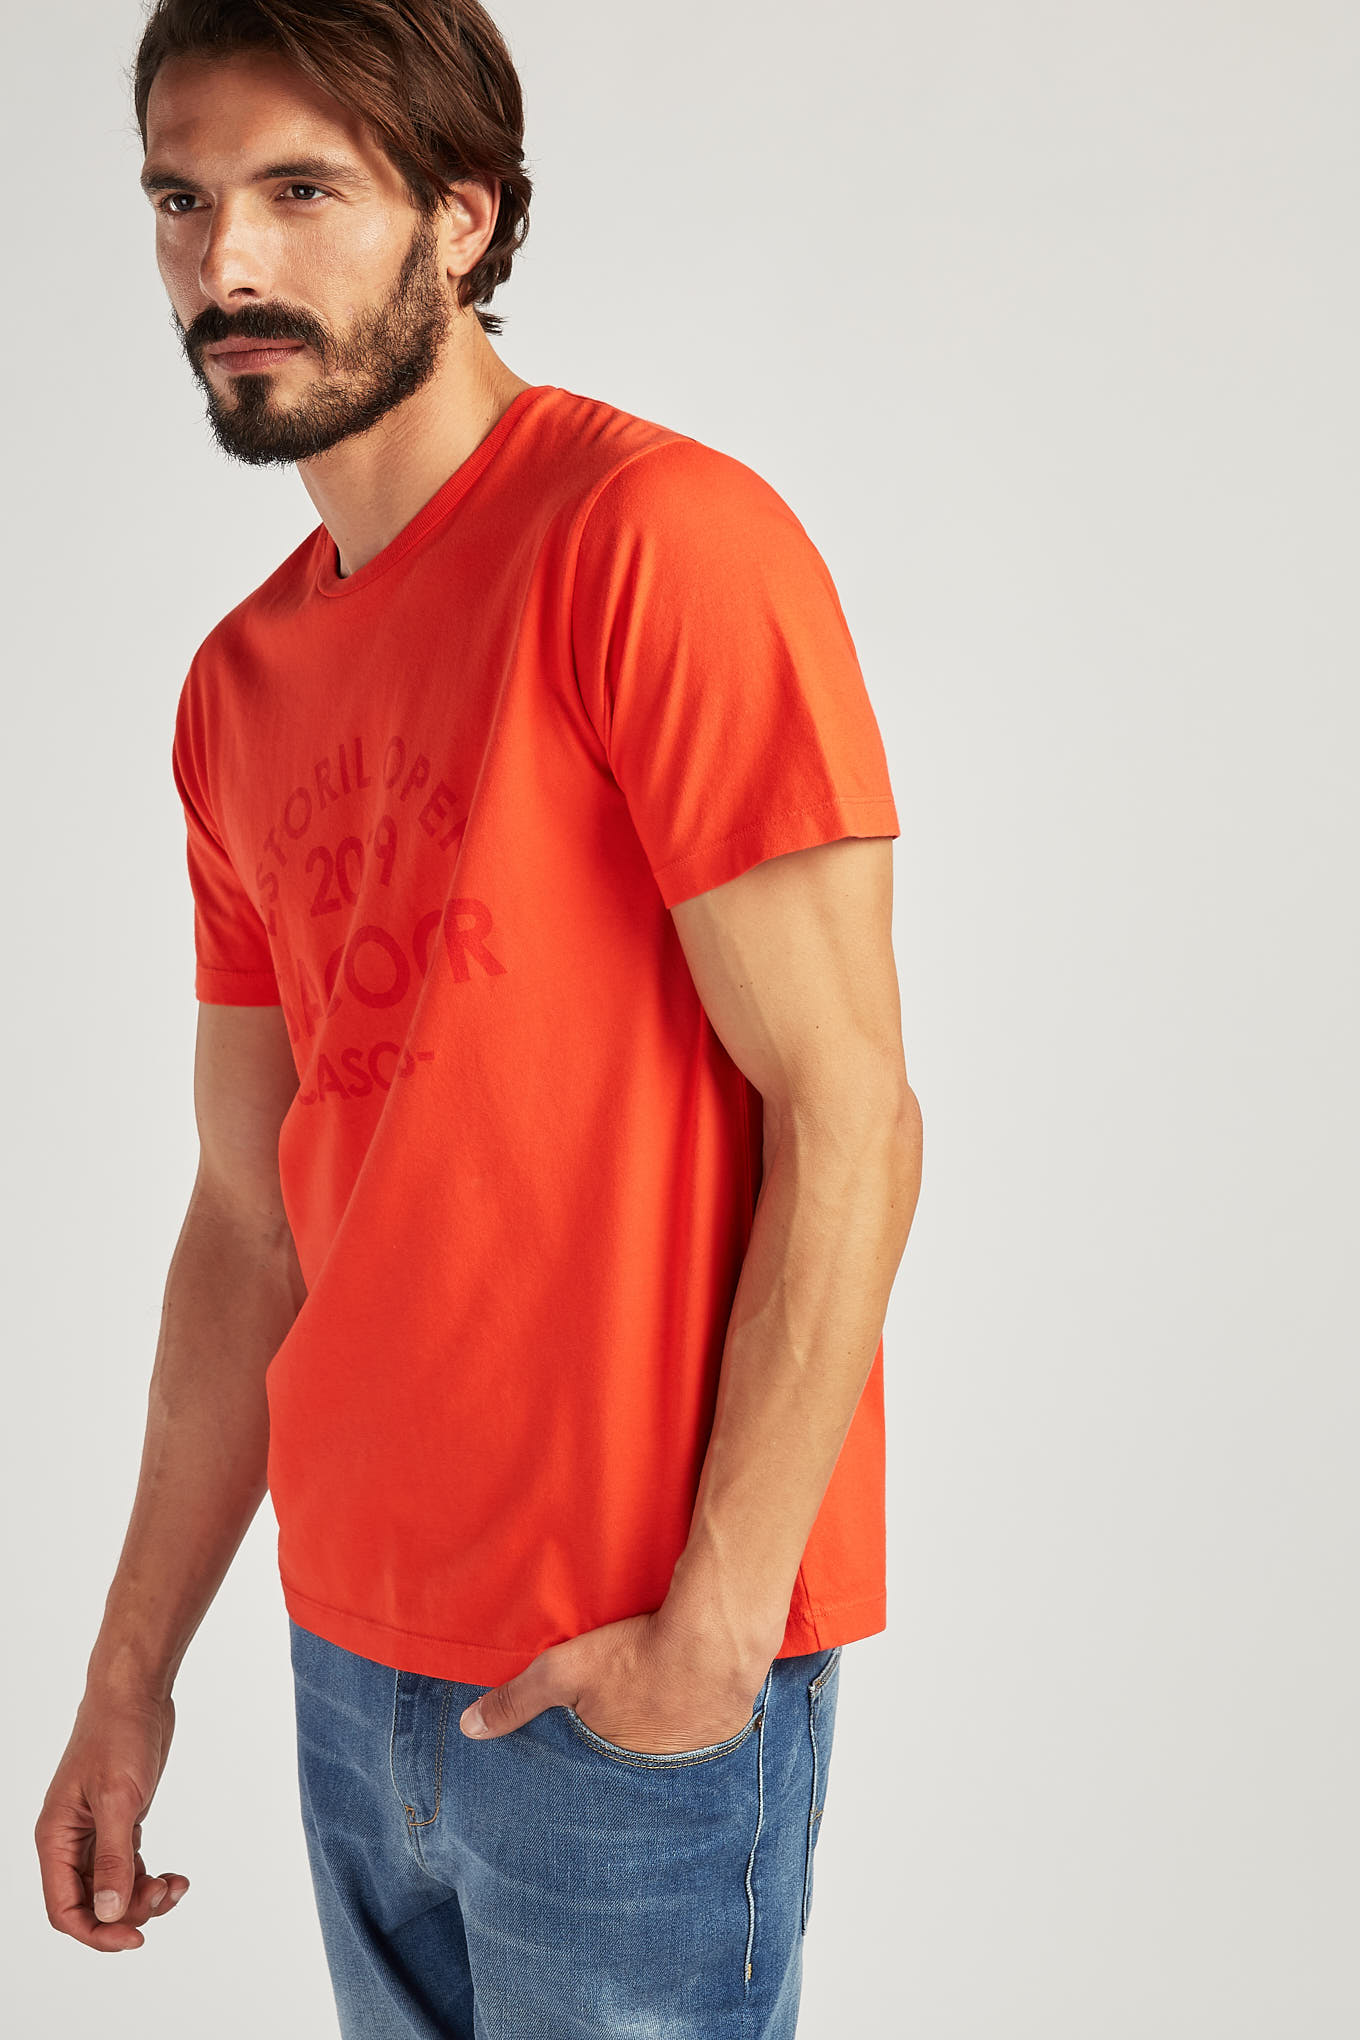 T-Shirt Orange Sport Man